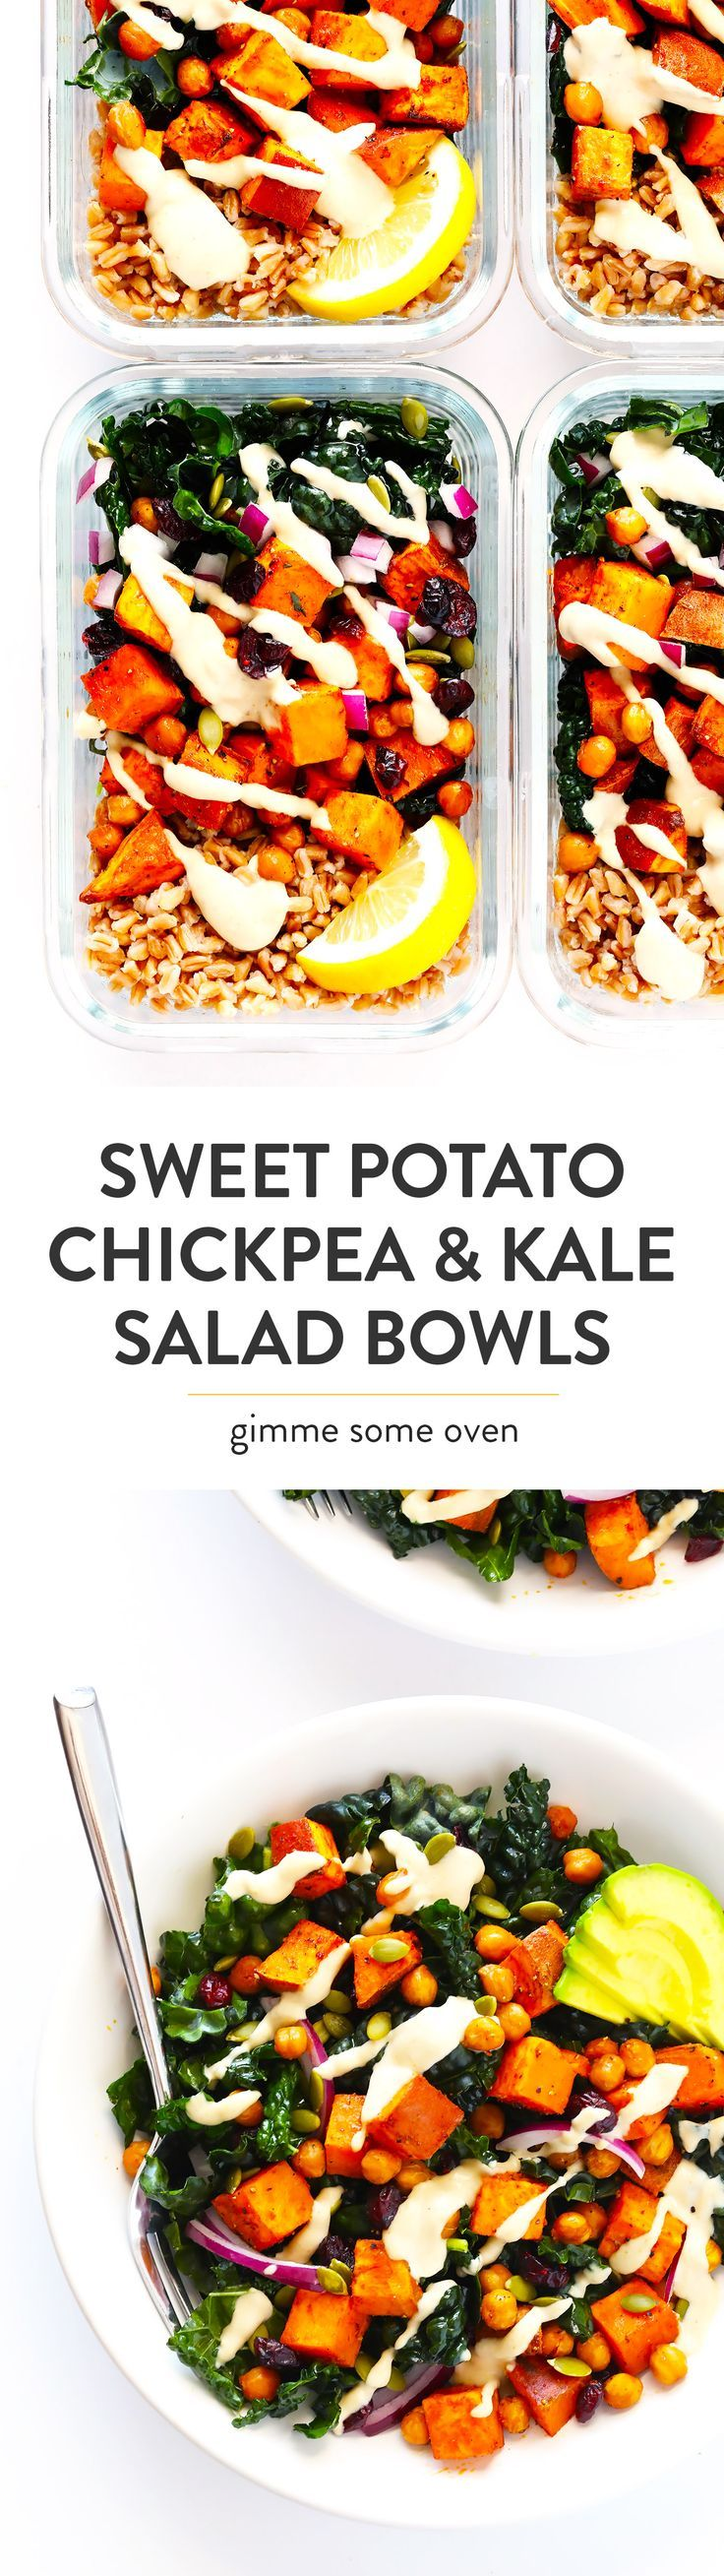 LOVE these meal prep kale salad bowls! They're filled with roasted sweet potatoes, zesty chickpeas, tender kale, pepitas (pumpkin seeds), cranberries, red onions, and a dreamy lemon-tahini dressing. Feel free to add quinoa or farro or rice if you'd like too! | Gluten-Free, Vegetarian, Vegan | Gimme Some Oven